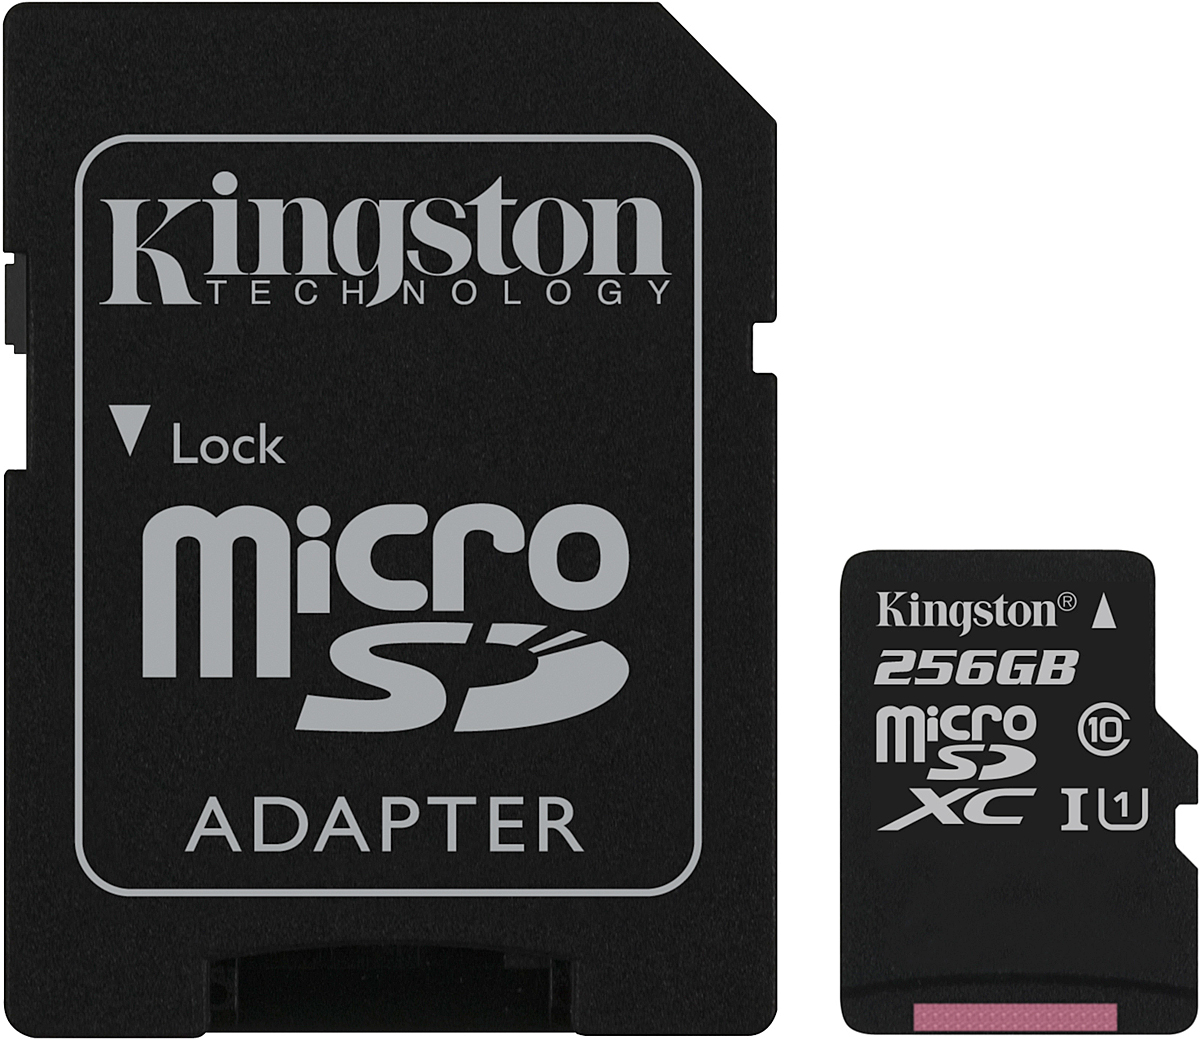 izmeritelplus.ru Kingston microSDXC Canvas Select 80R CL10 UHS-ISP 256GB карта памяти с адаптером